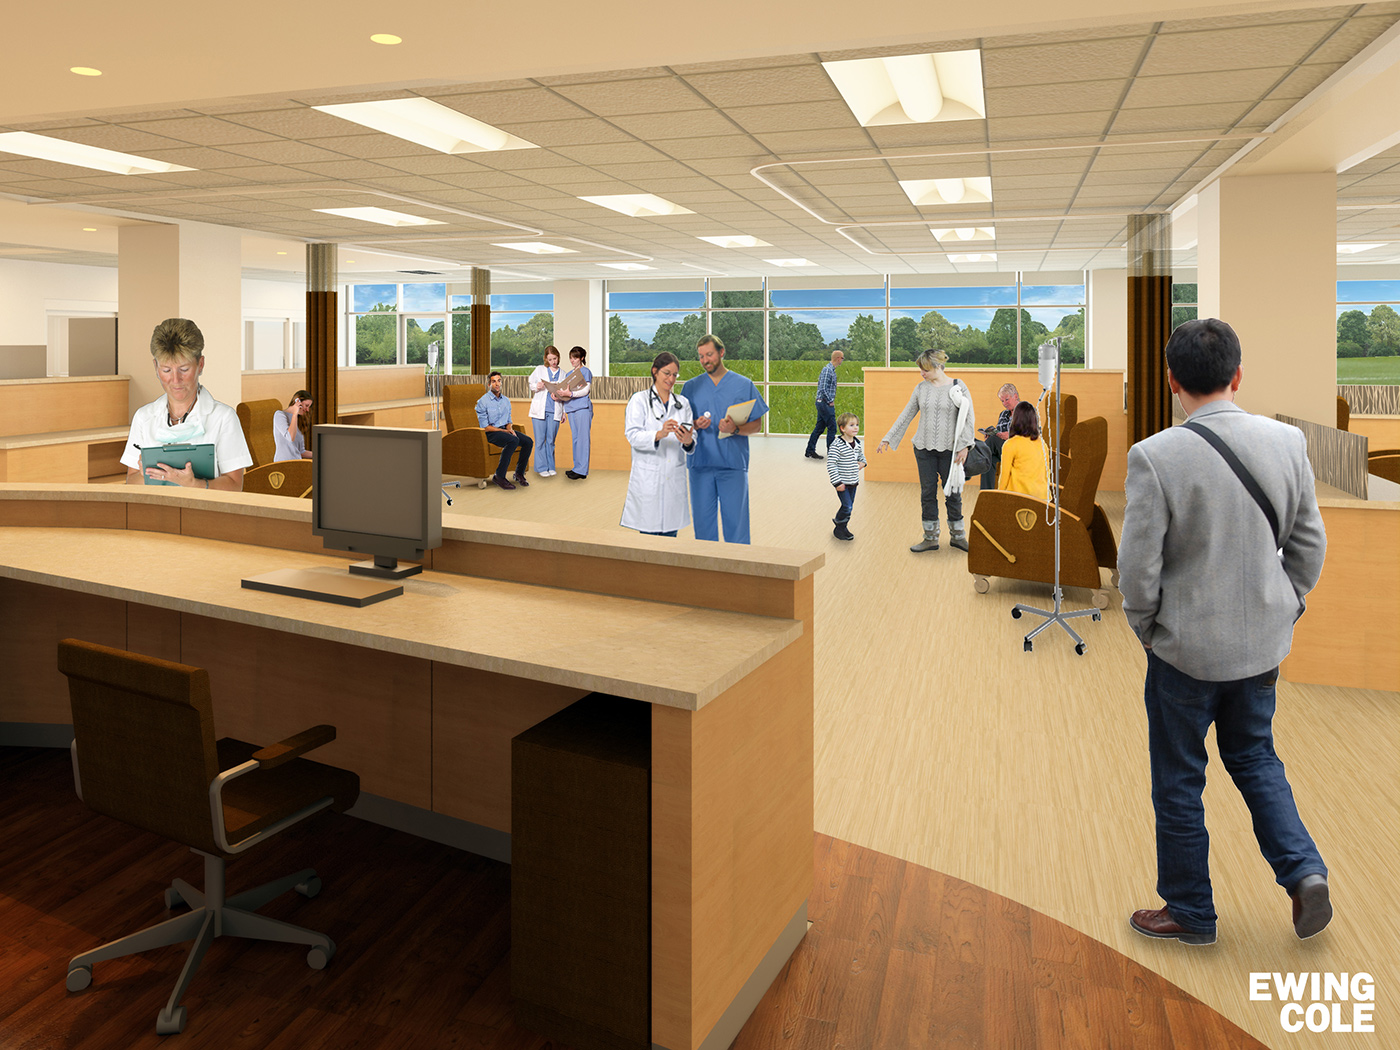 Design Guidelines For Short Stay Patient Units 2017 05